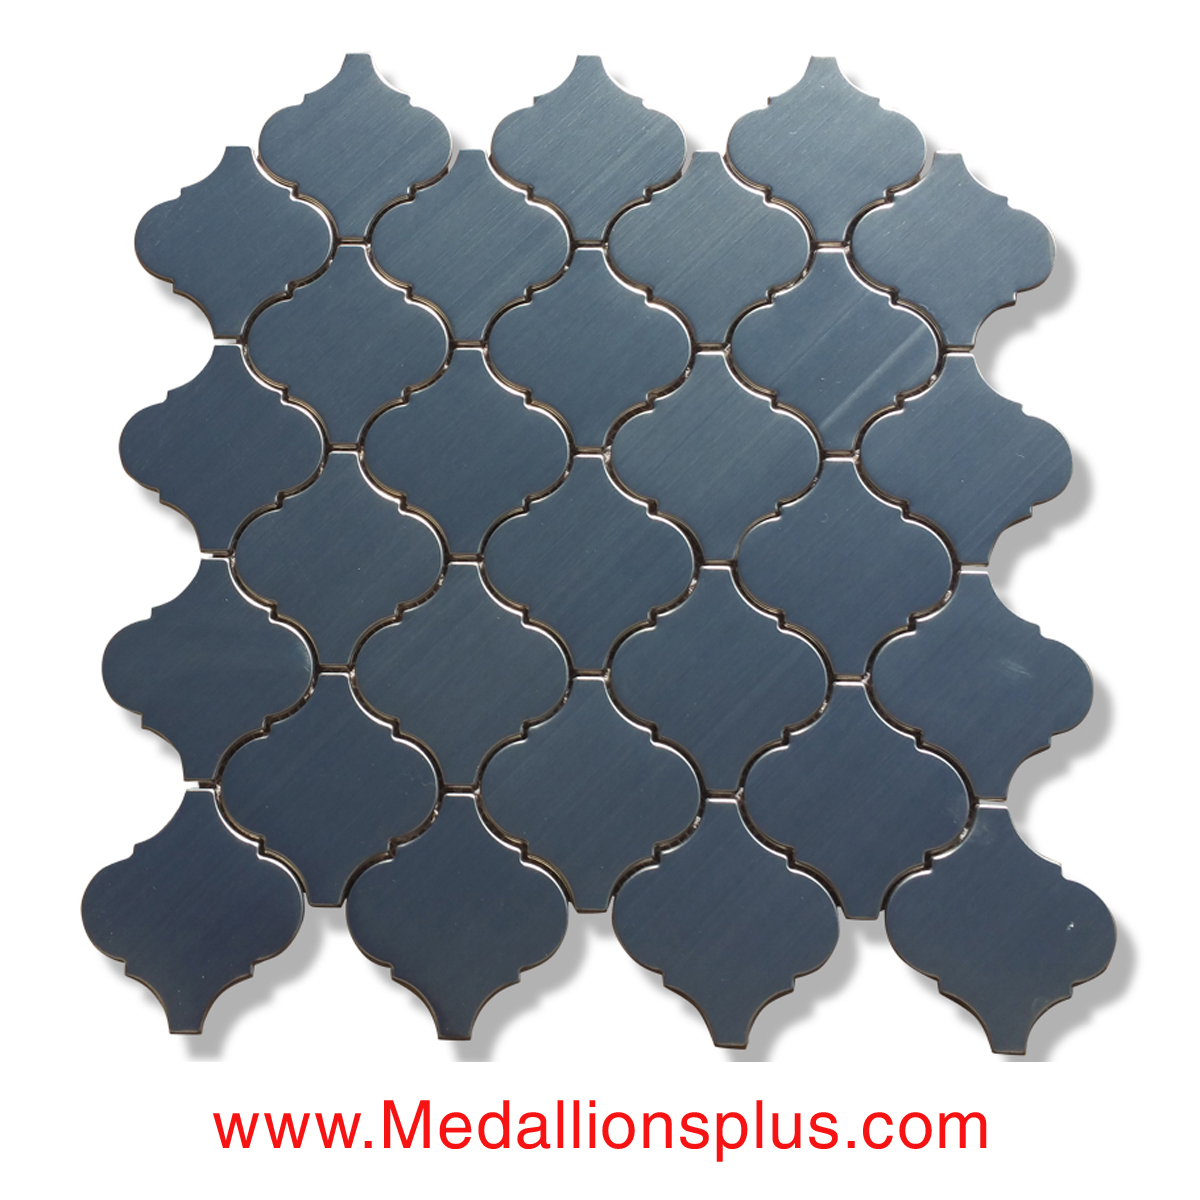 Medallions Plus - Floor Medallions on Sale. Tile, Mosaic, & Stone ...